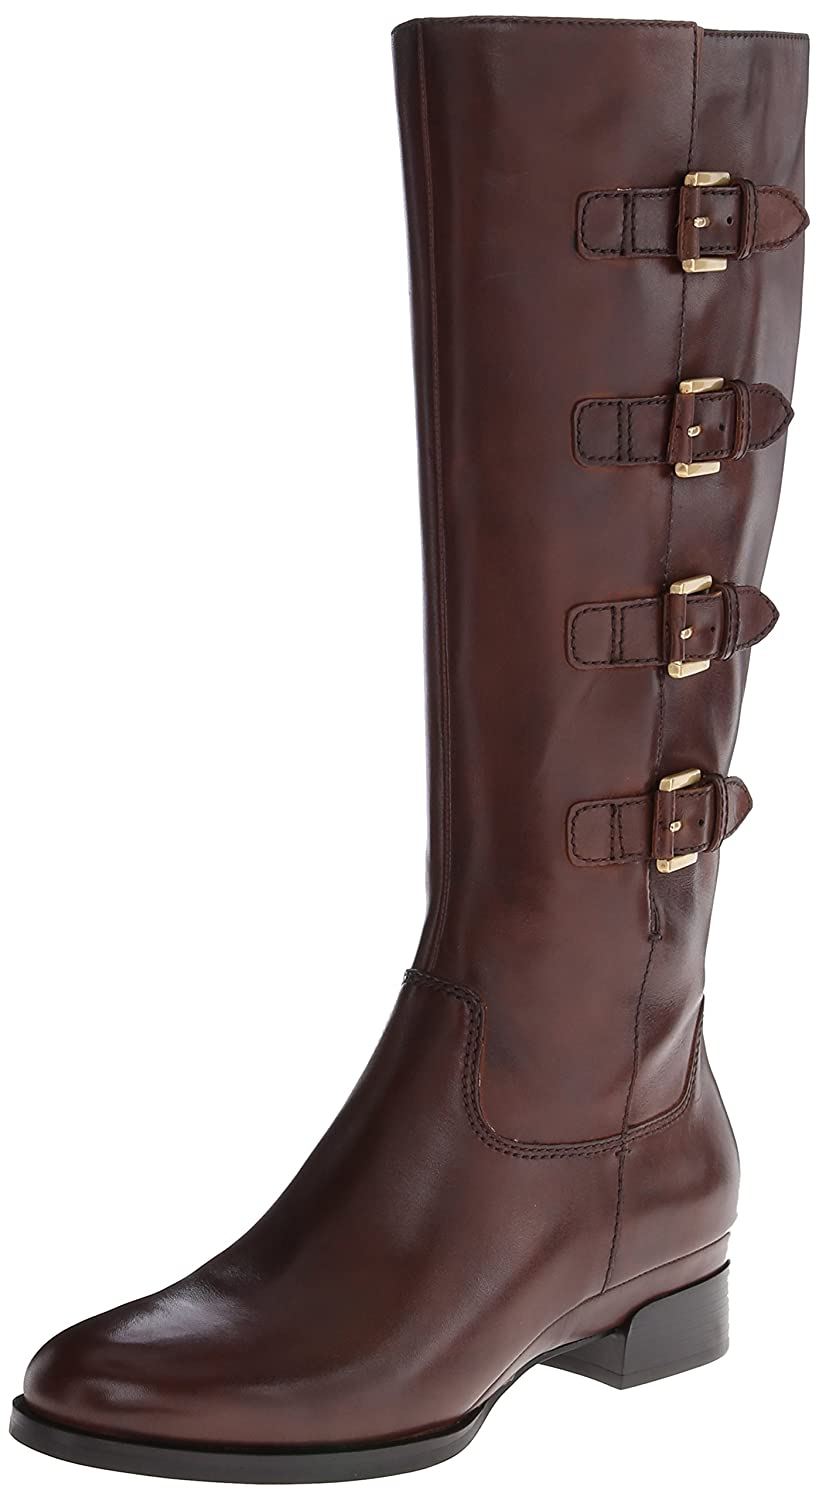 Deluxe Adult Costumes - Women's Sullivan Buckle Straps Brown Leather Boots